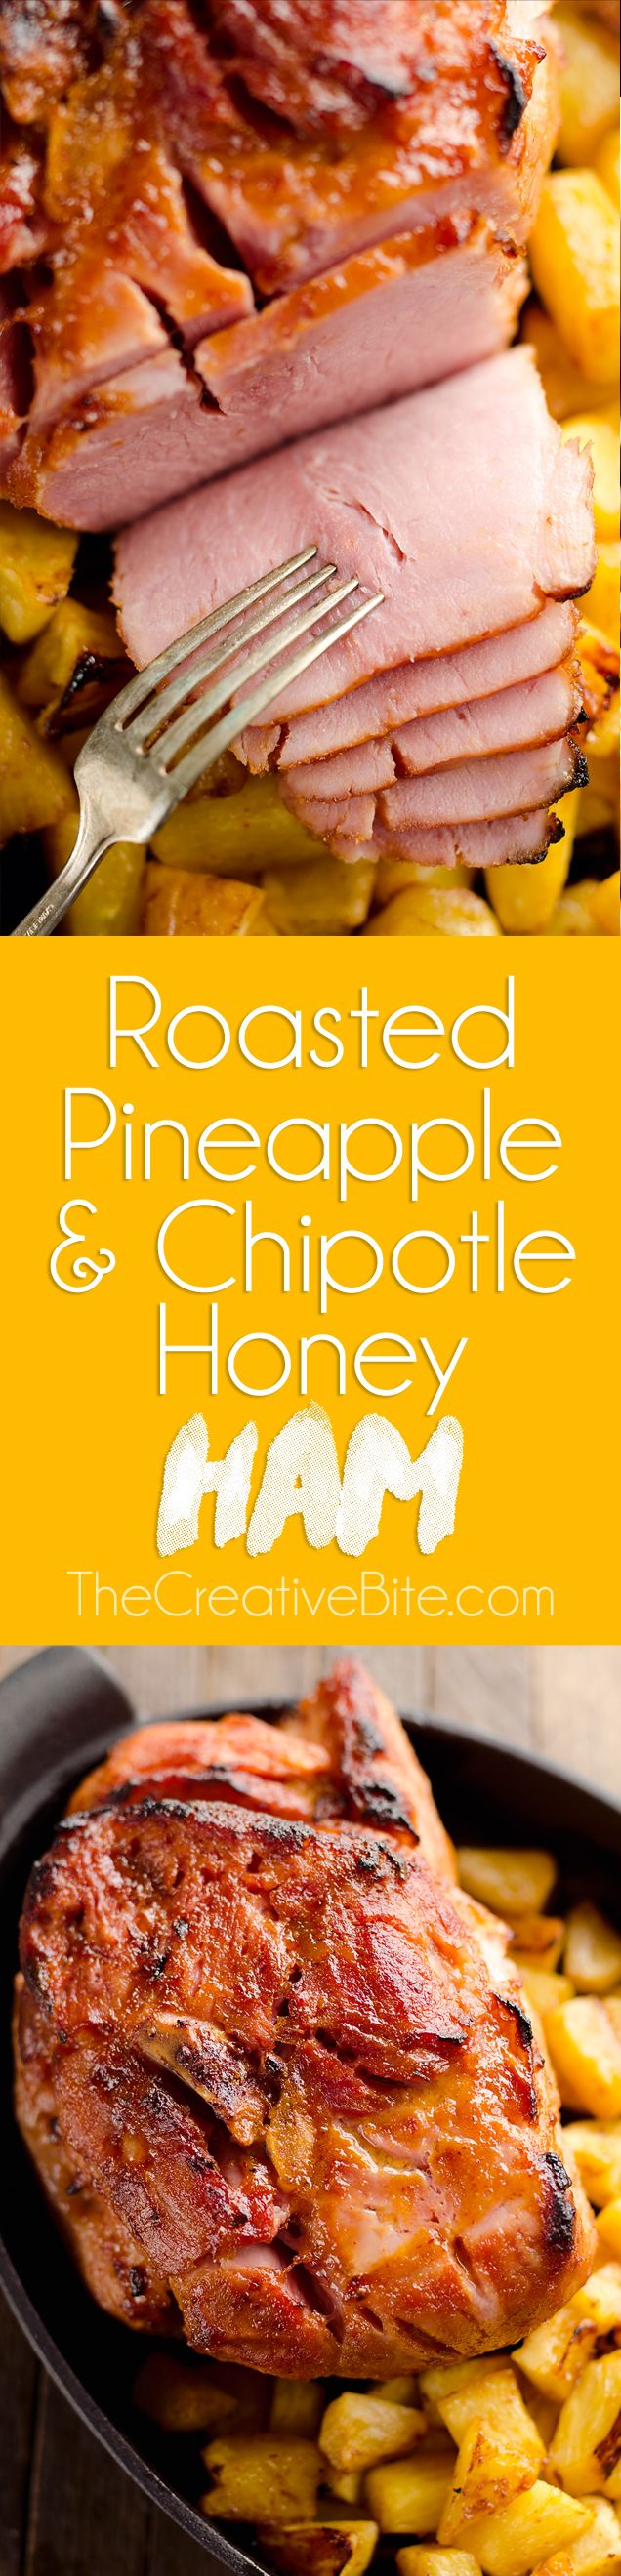 Roasted Pineapple & Chipotle Honey Ham is a sweet and spicy twist on your traditional holiday meal. This easy recipe is finished off with fresh pineapple roasted to sweet perfection for a delicious compliment to the salty and smoky ham. #Holiday #Ham #Pineapple